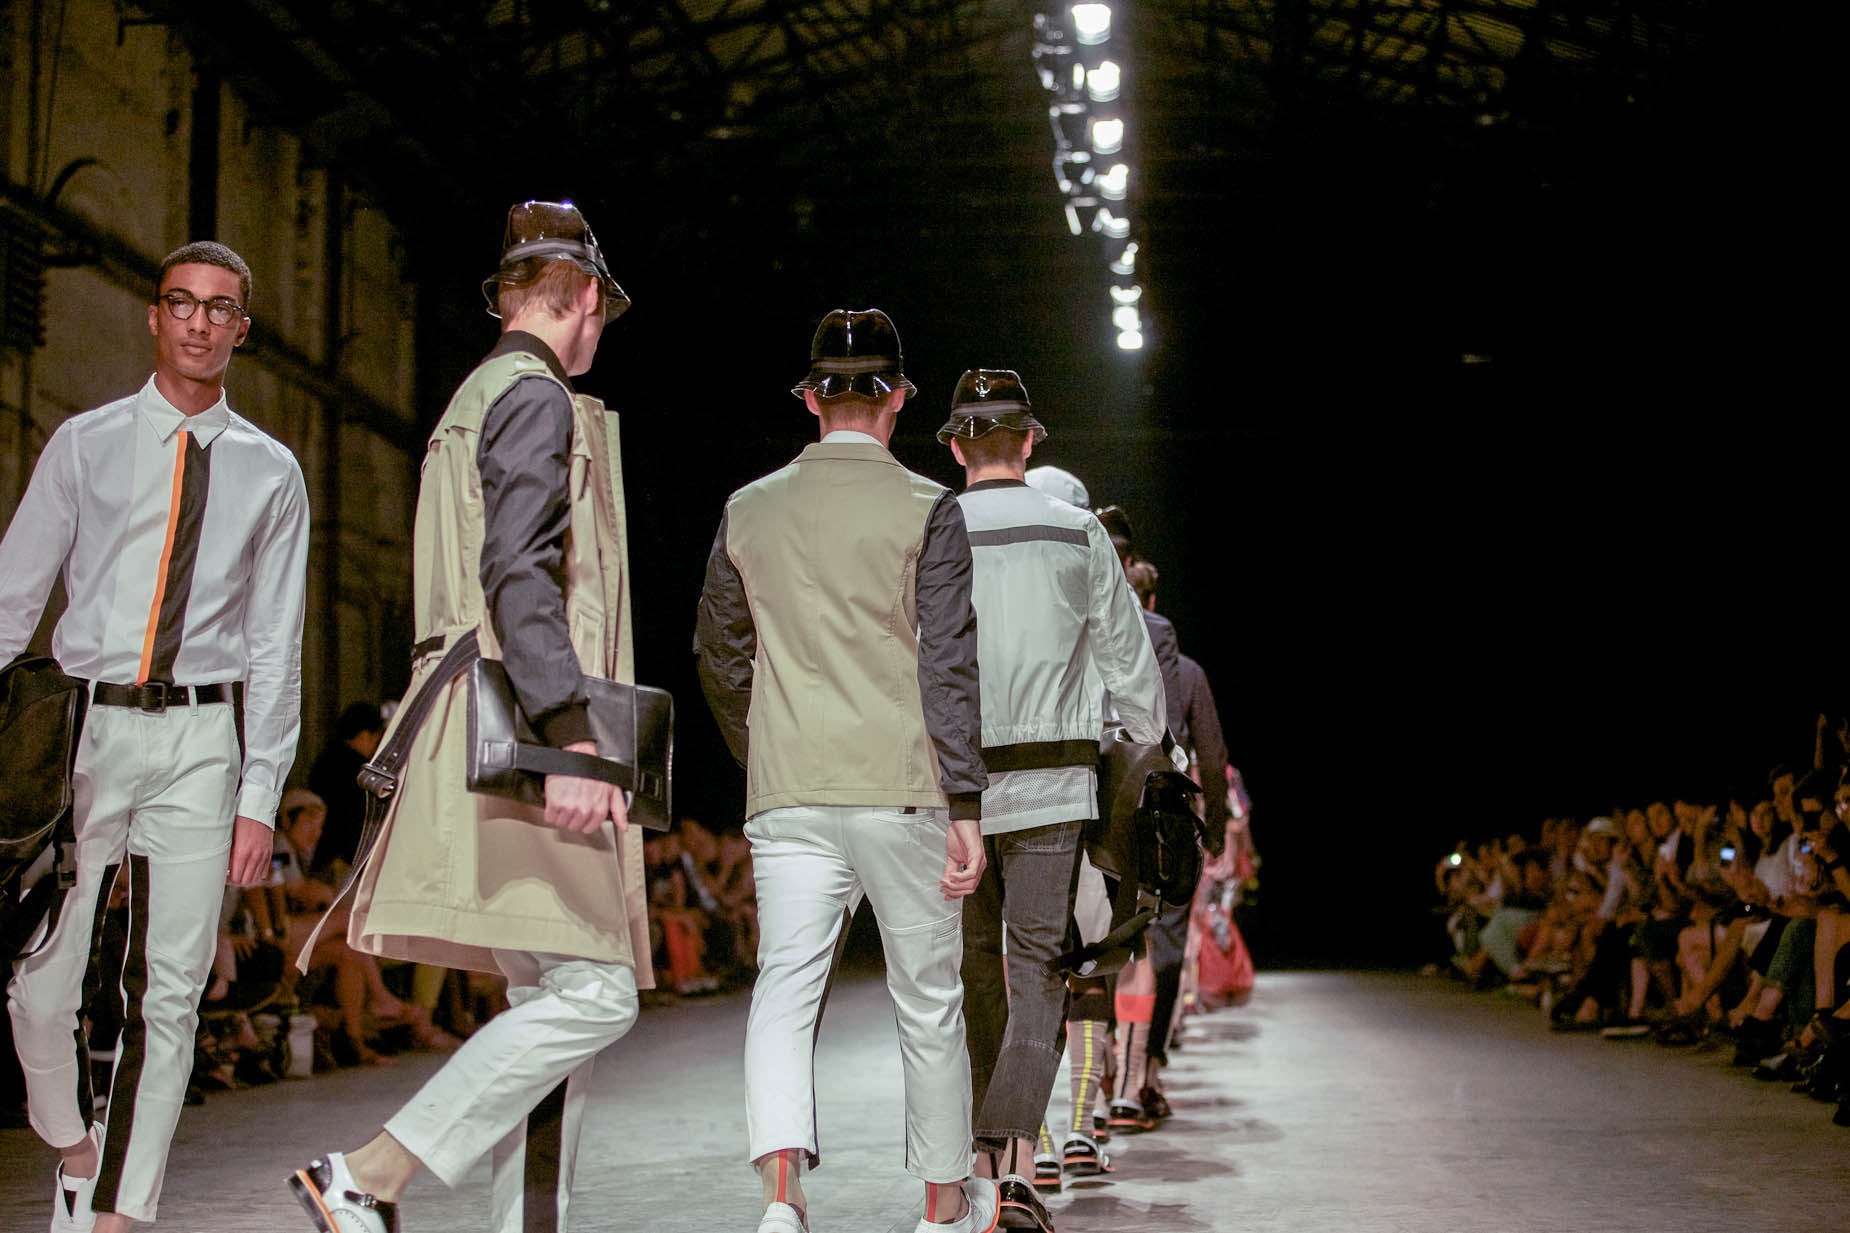 Andrea Pompilio Spring Summer 2013 Men Collection Pitti Immagine Uomo Runway Finale Bag Details